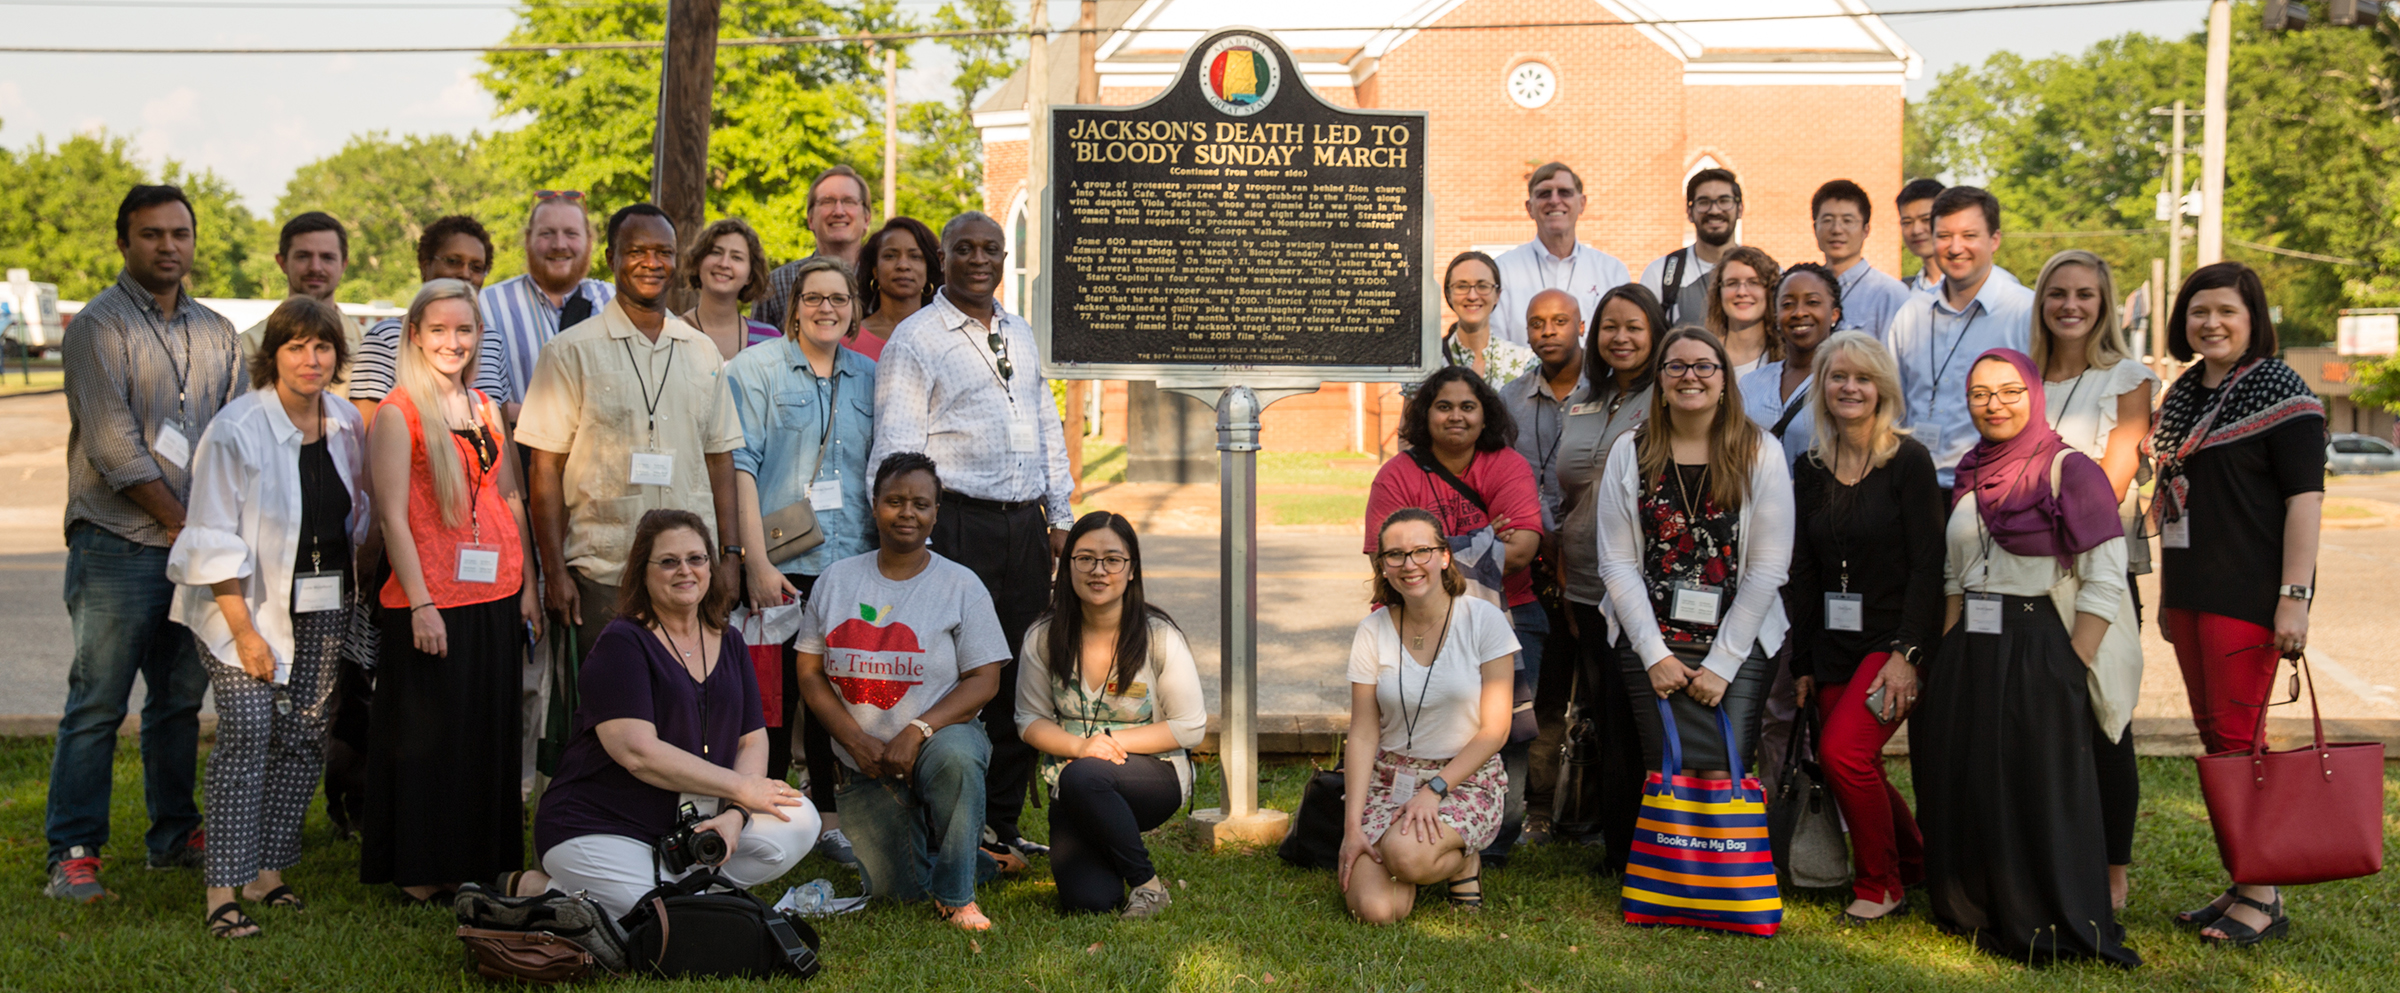 "Tour participants made a stop at the ""Bloody Sunday"" plaque commemorating the death of civil rights activist Jimmie Lee Jackson that occurred on March 7, 1965."